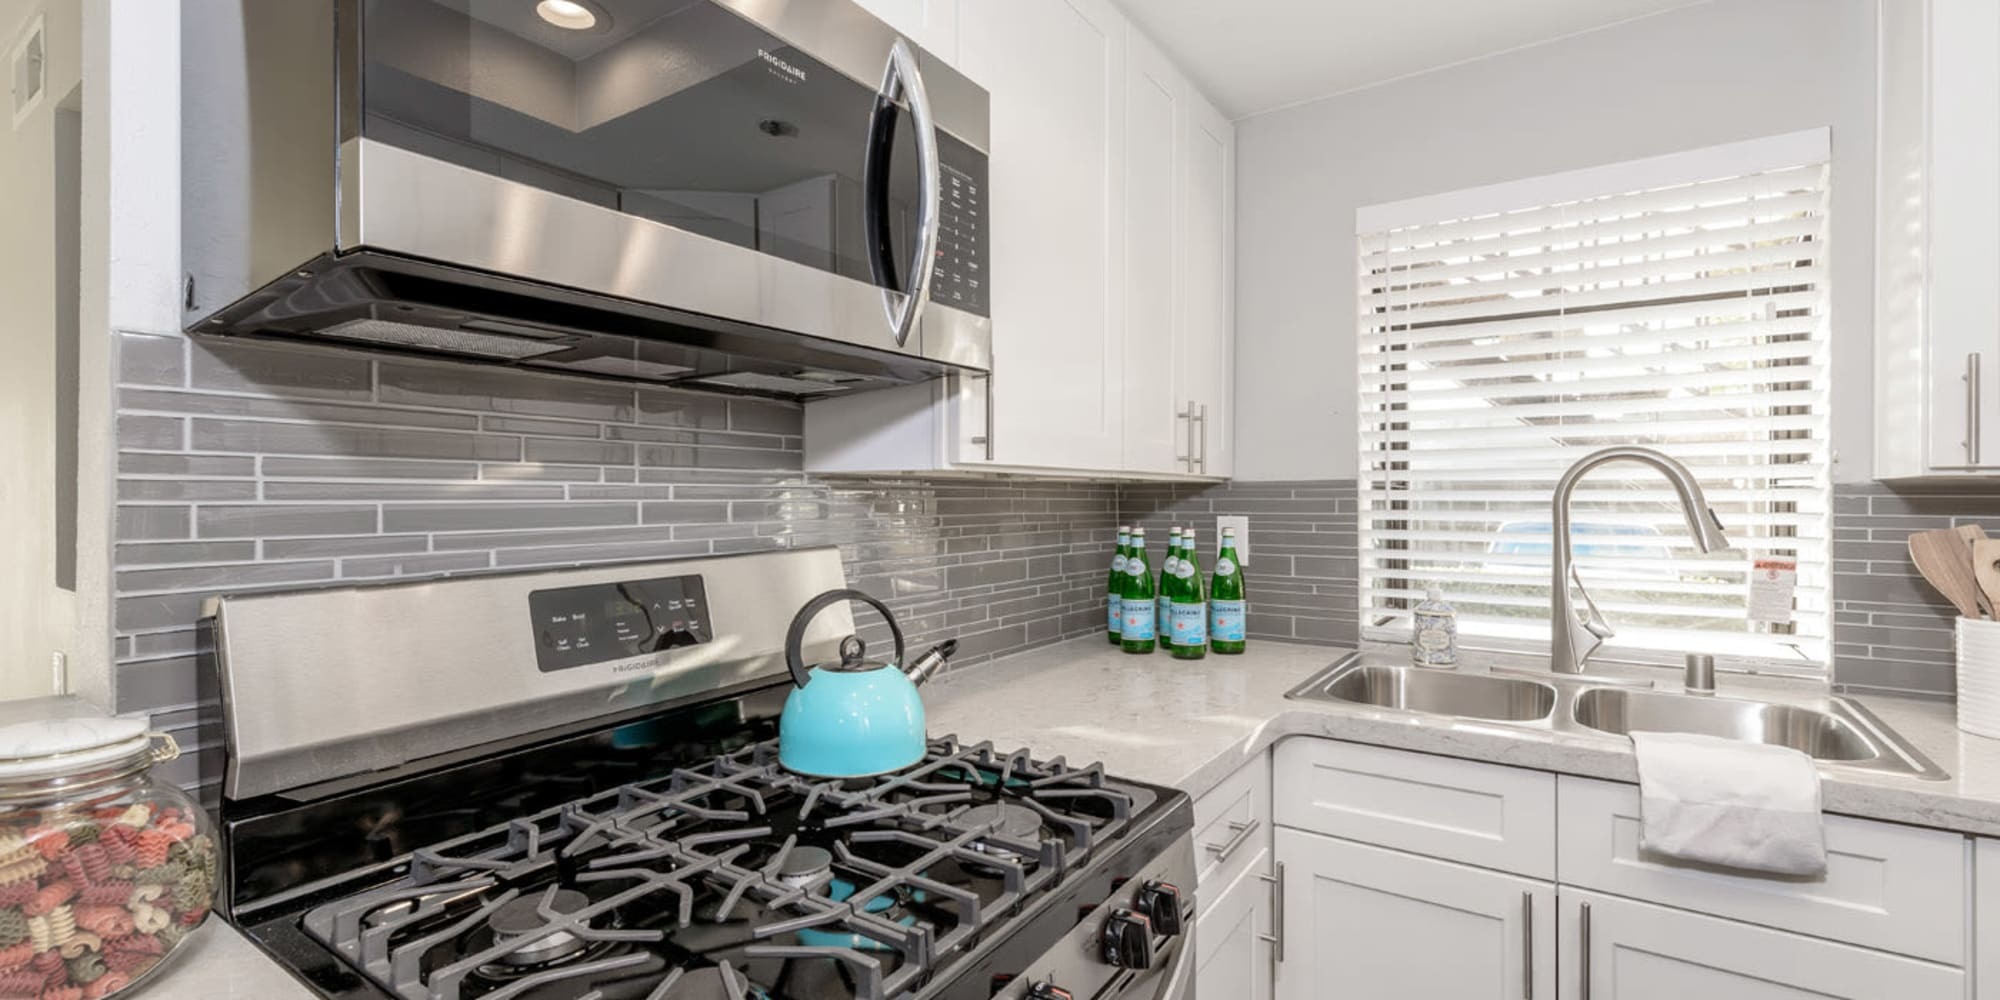 Model home's kitchen with sleek looking white cabinets and stainless steel appliances at Sendero Huntington Beach in Huntington Beach, California